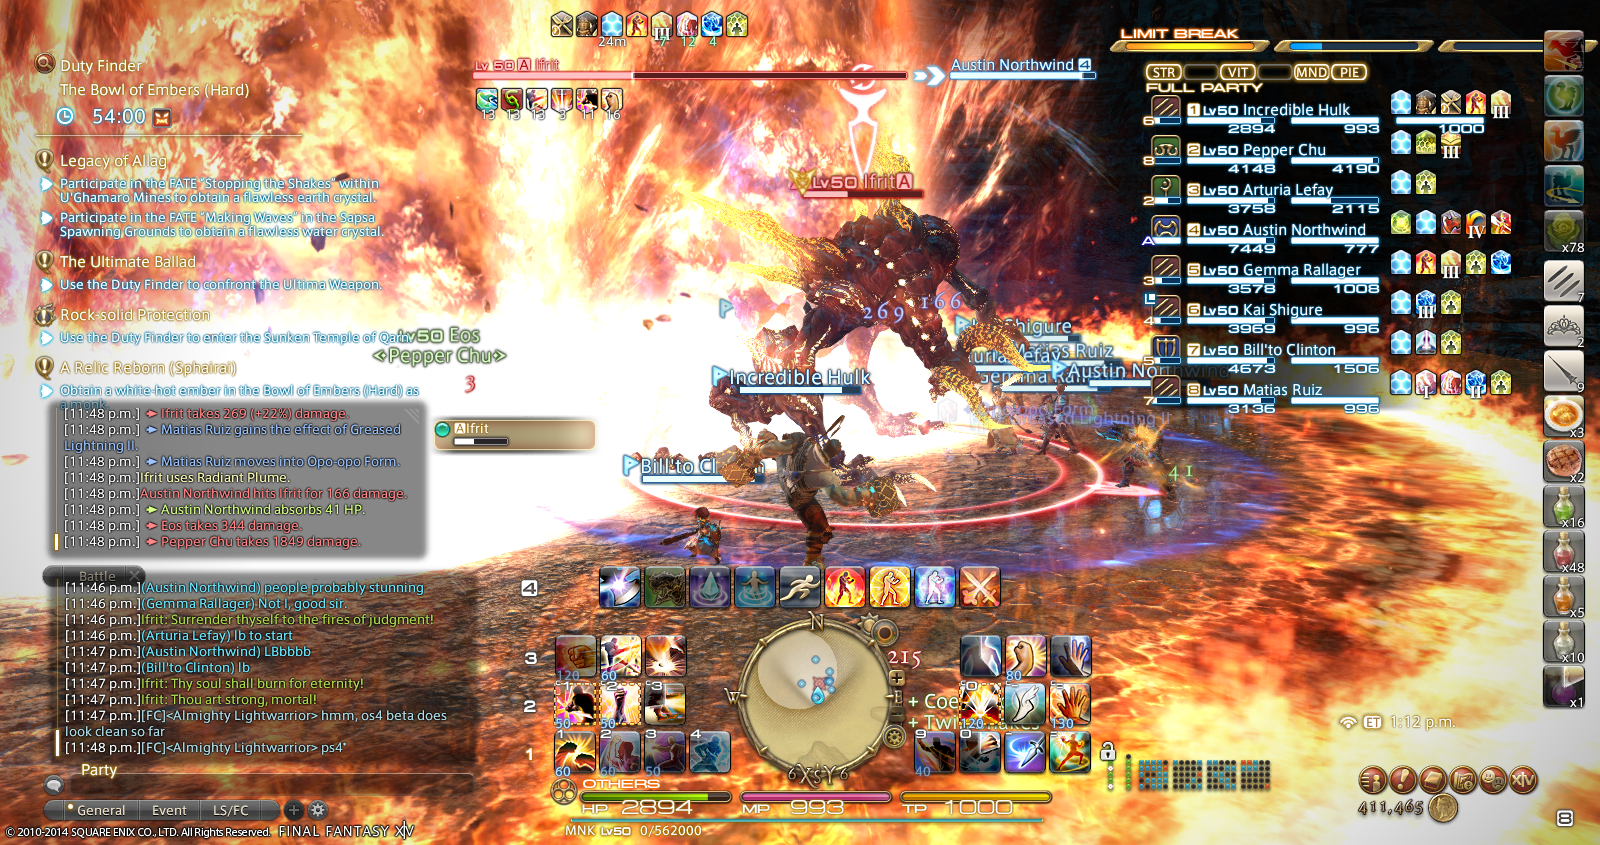 omnipotent ffxiv scaling them hurts down bucket size file need bigger 1920 stupid reborn screenshot thread realm fantasy 1017 somewhat less with release final